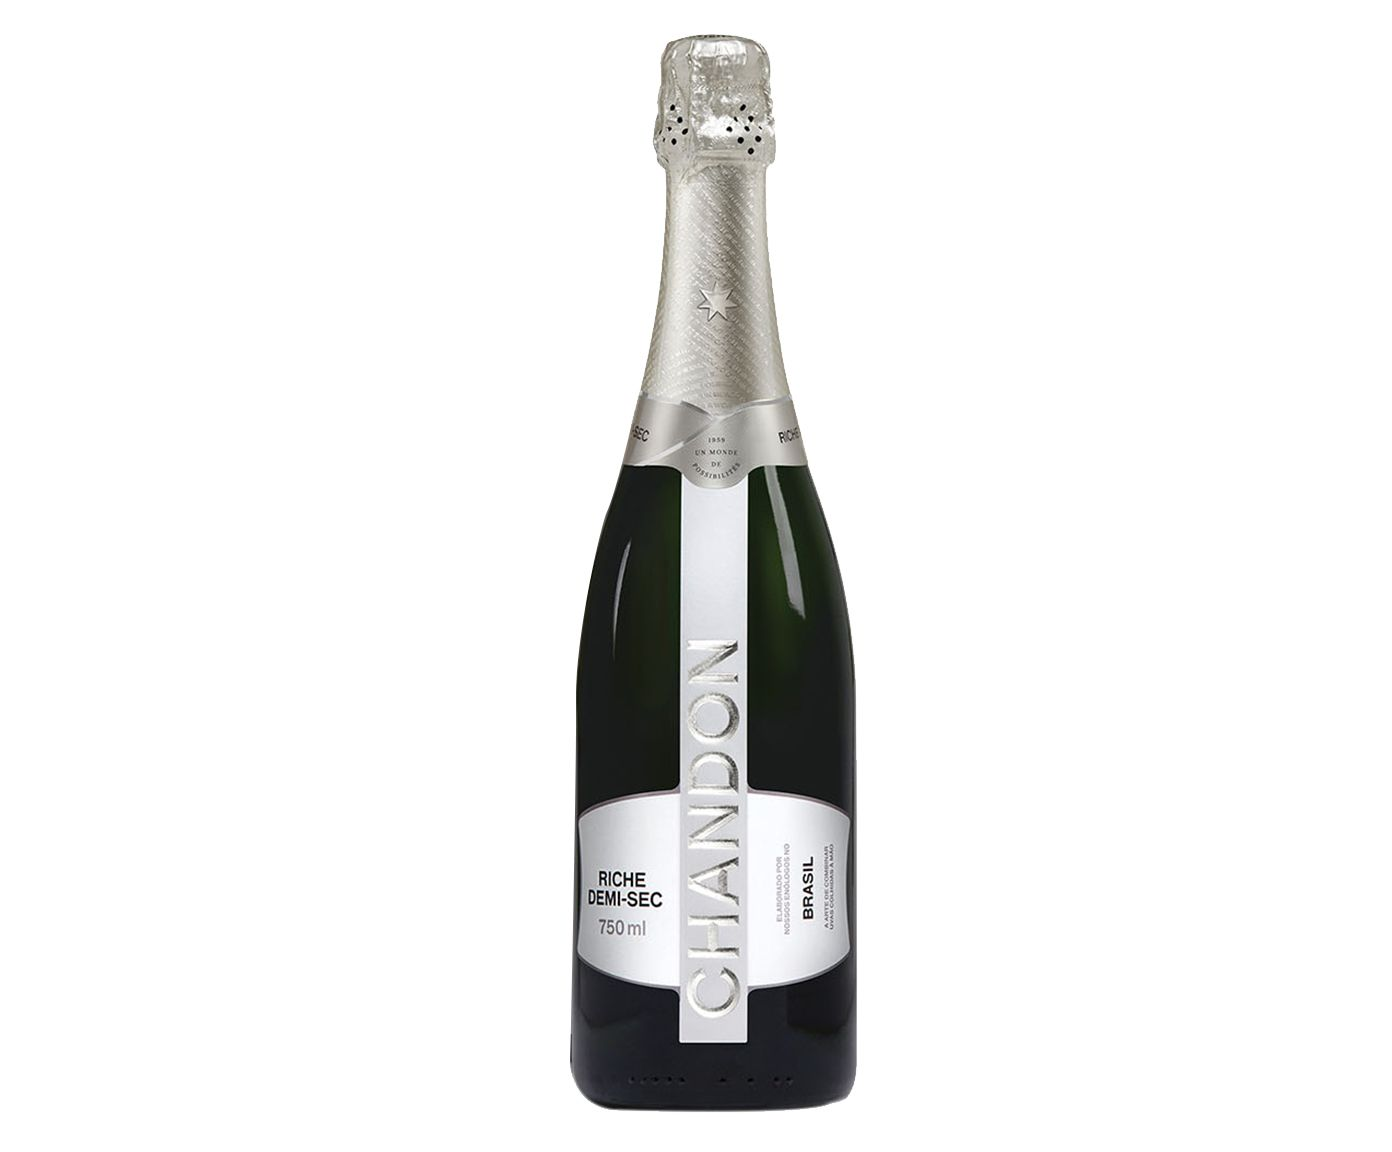 Espumante Chandon Riche Demi-Sec - 750ml | Westwing.com.br